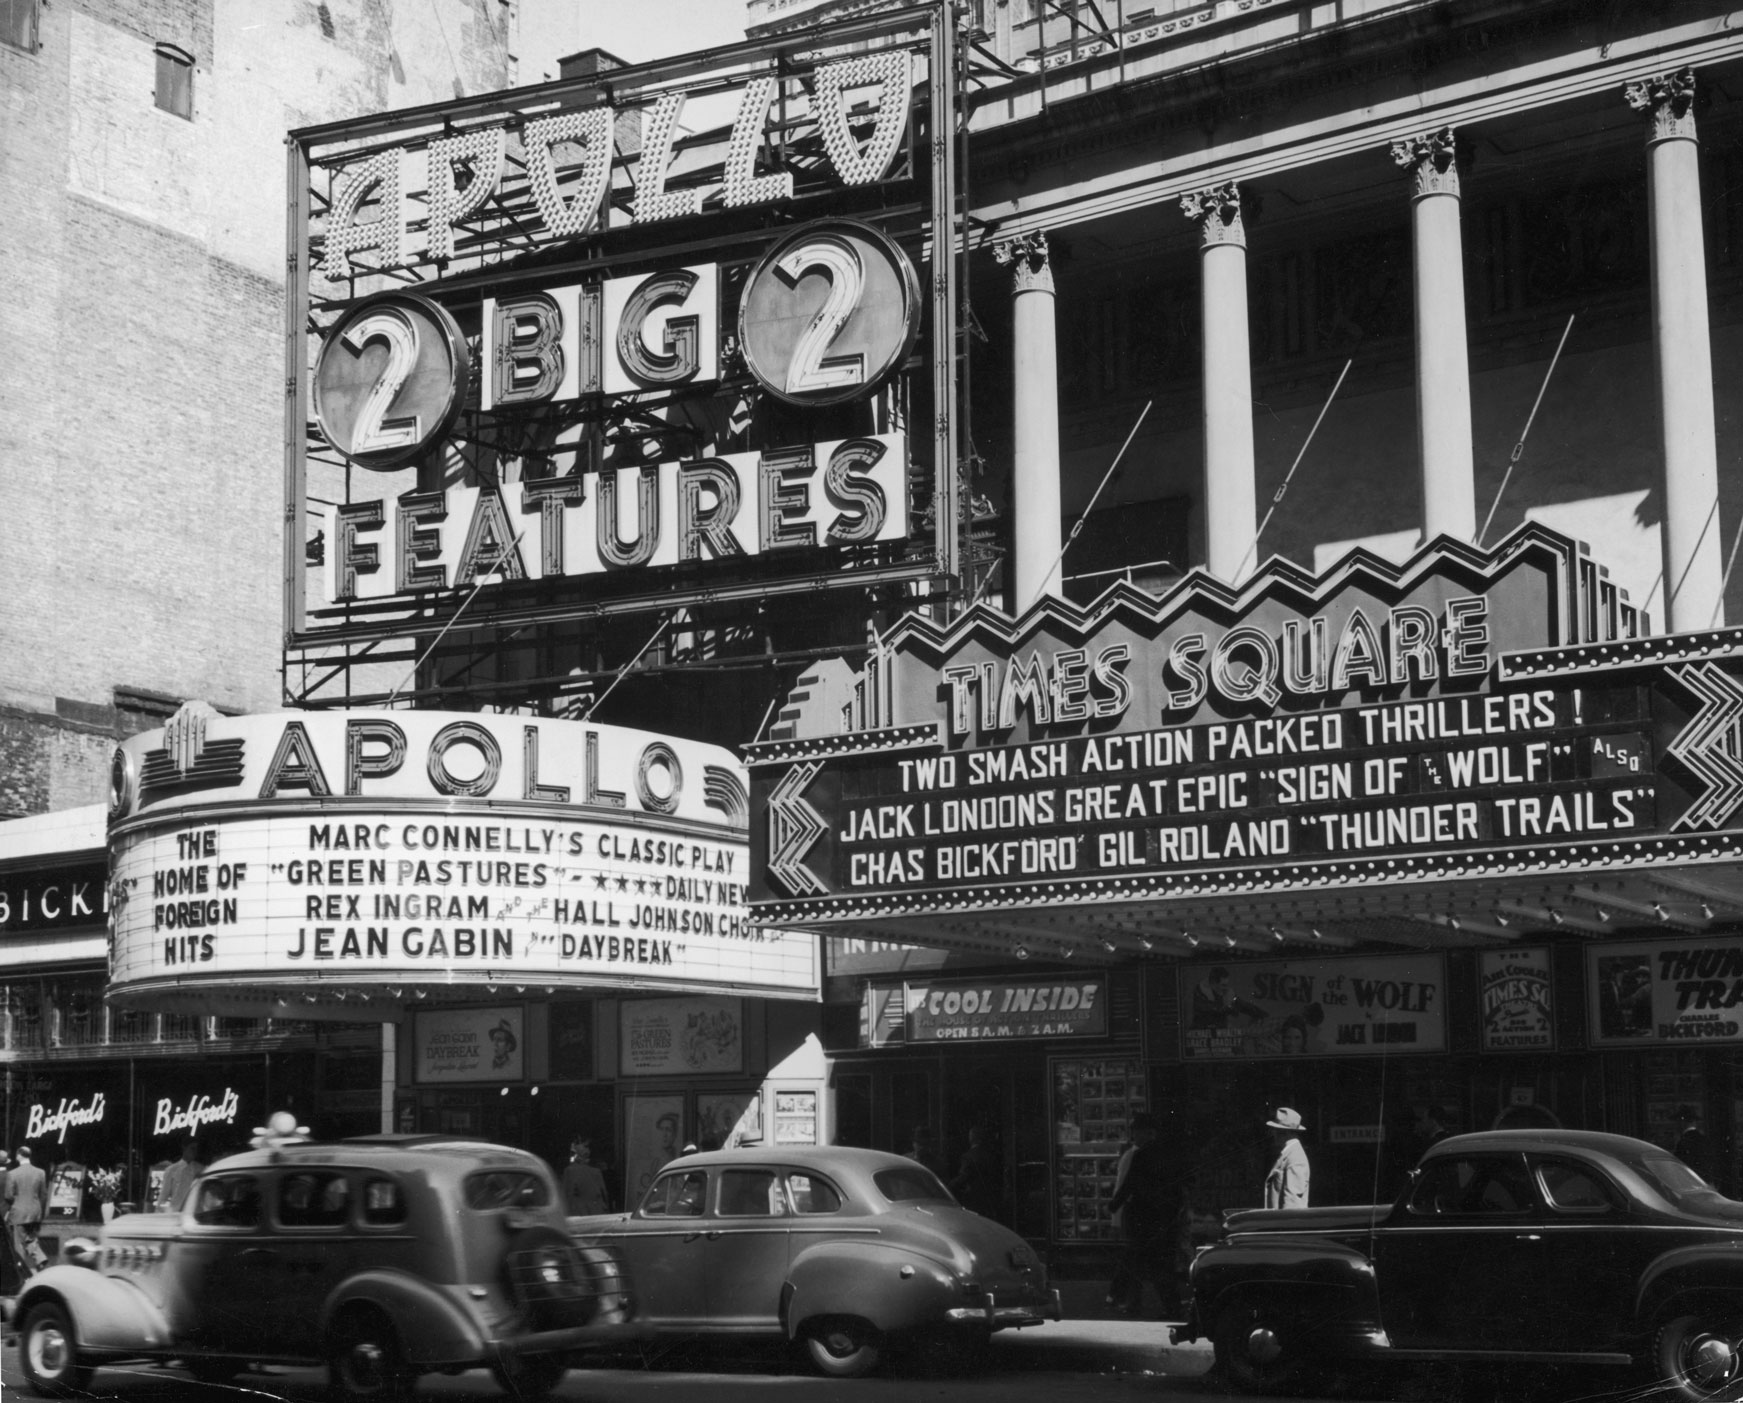 The Apollo and Times Square Theatres, circa 1941. Credit: Getty Images.